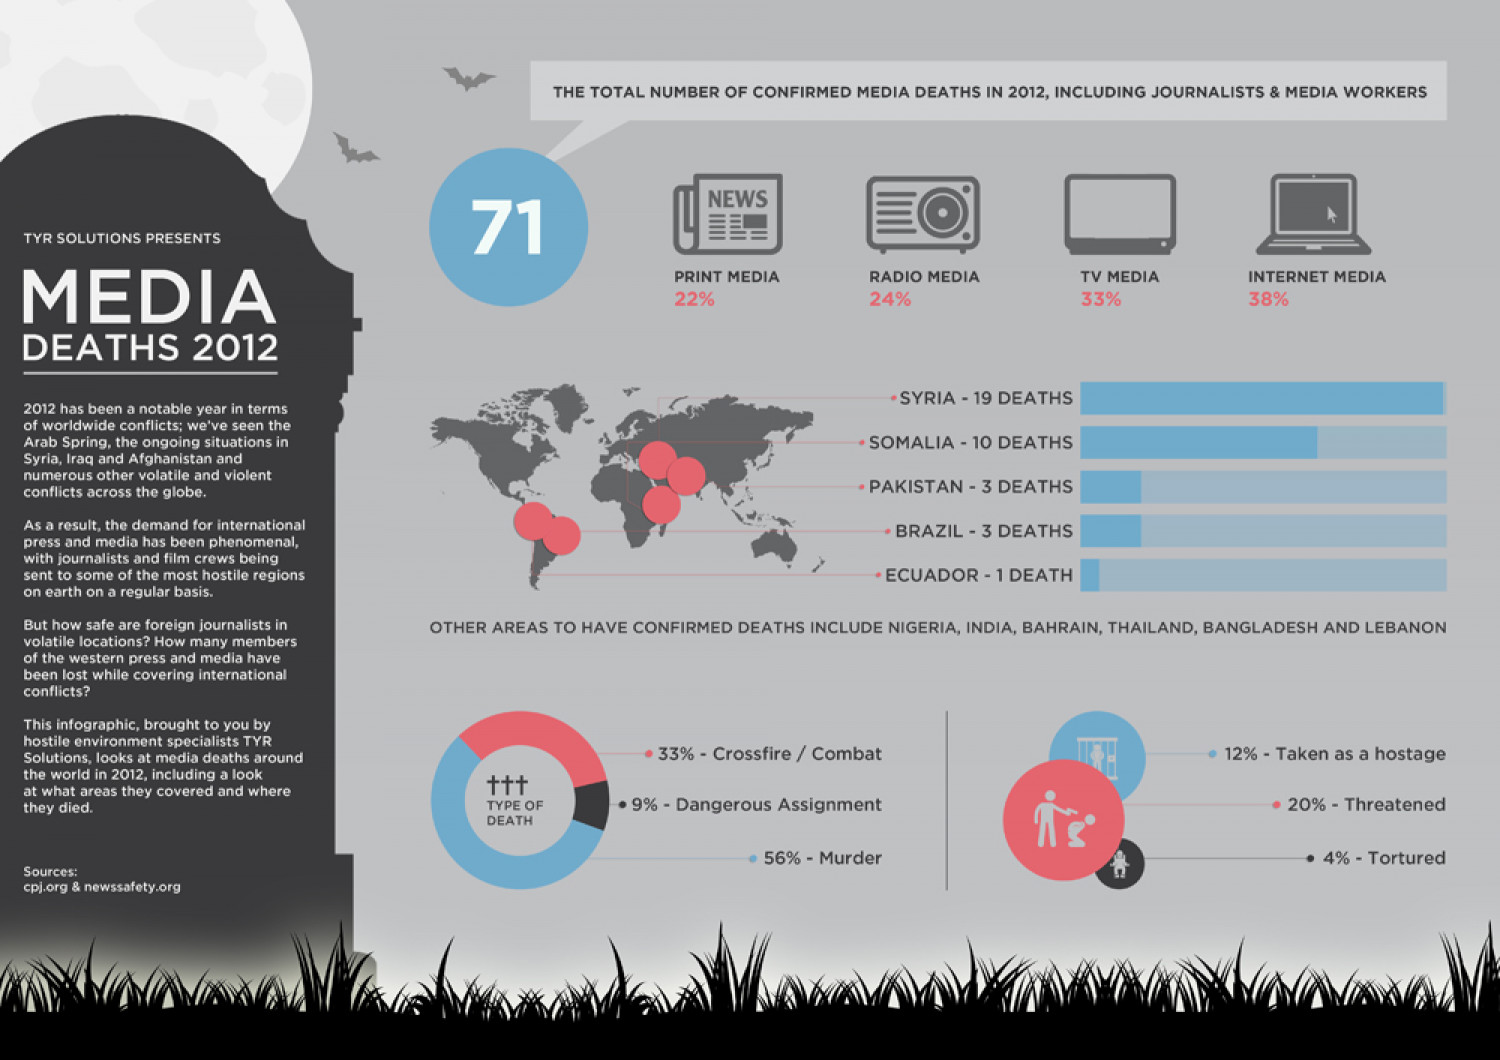 Media Deaths 2012 Infographic